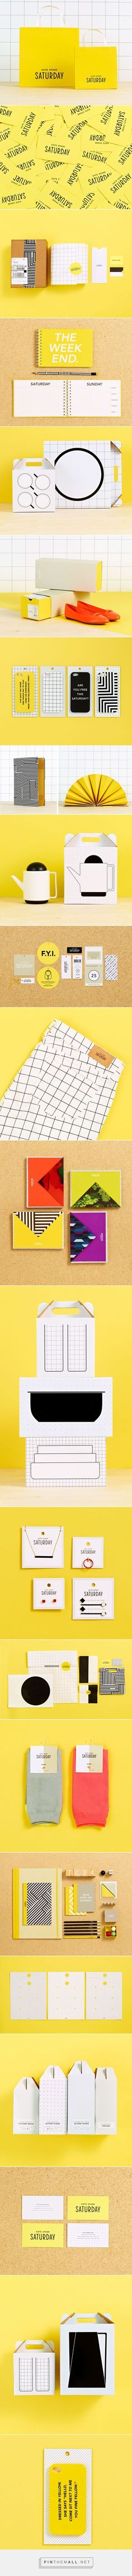 Kate Spade Saturday Packaging and Product on Behance